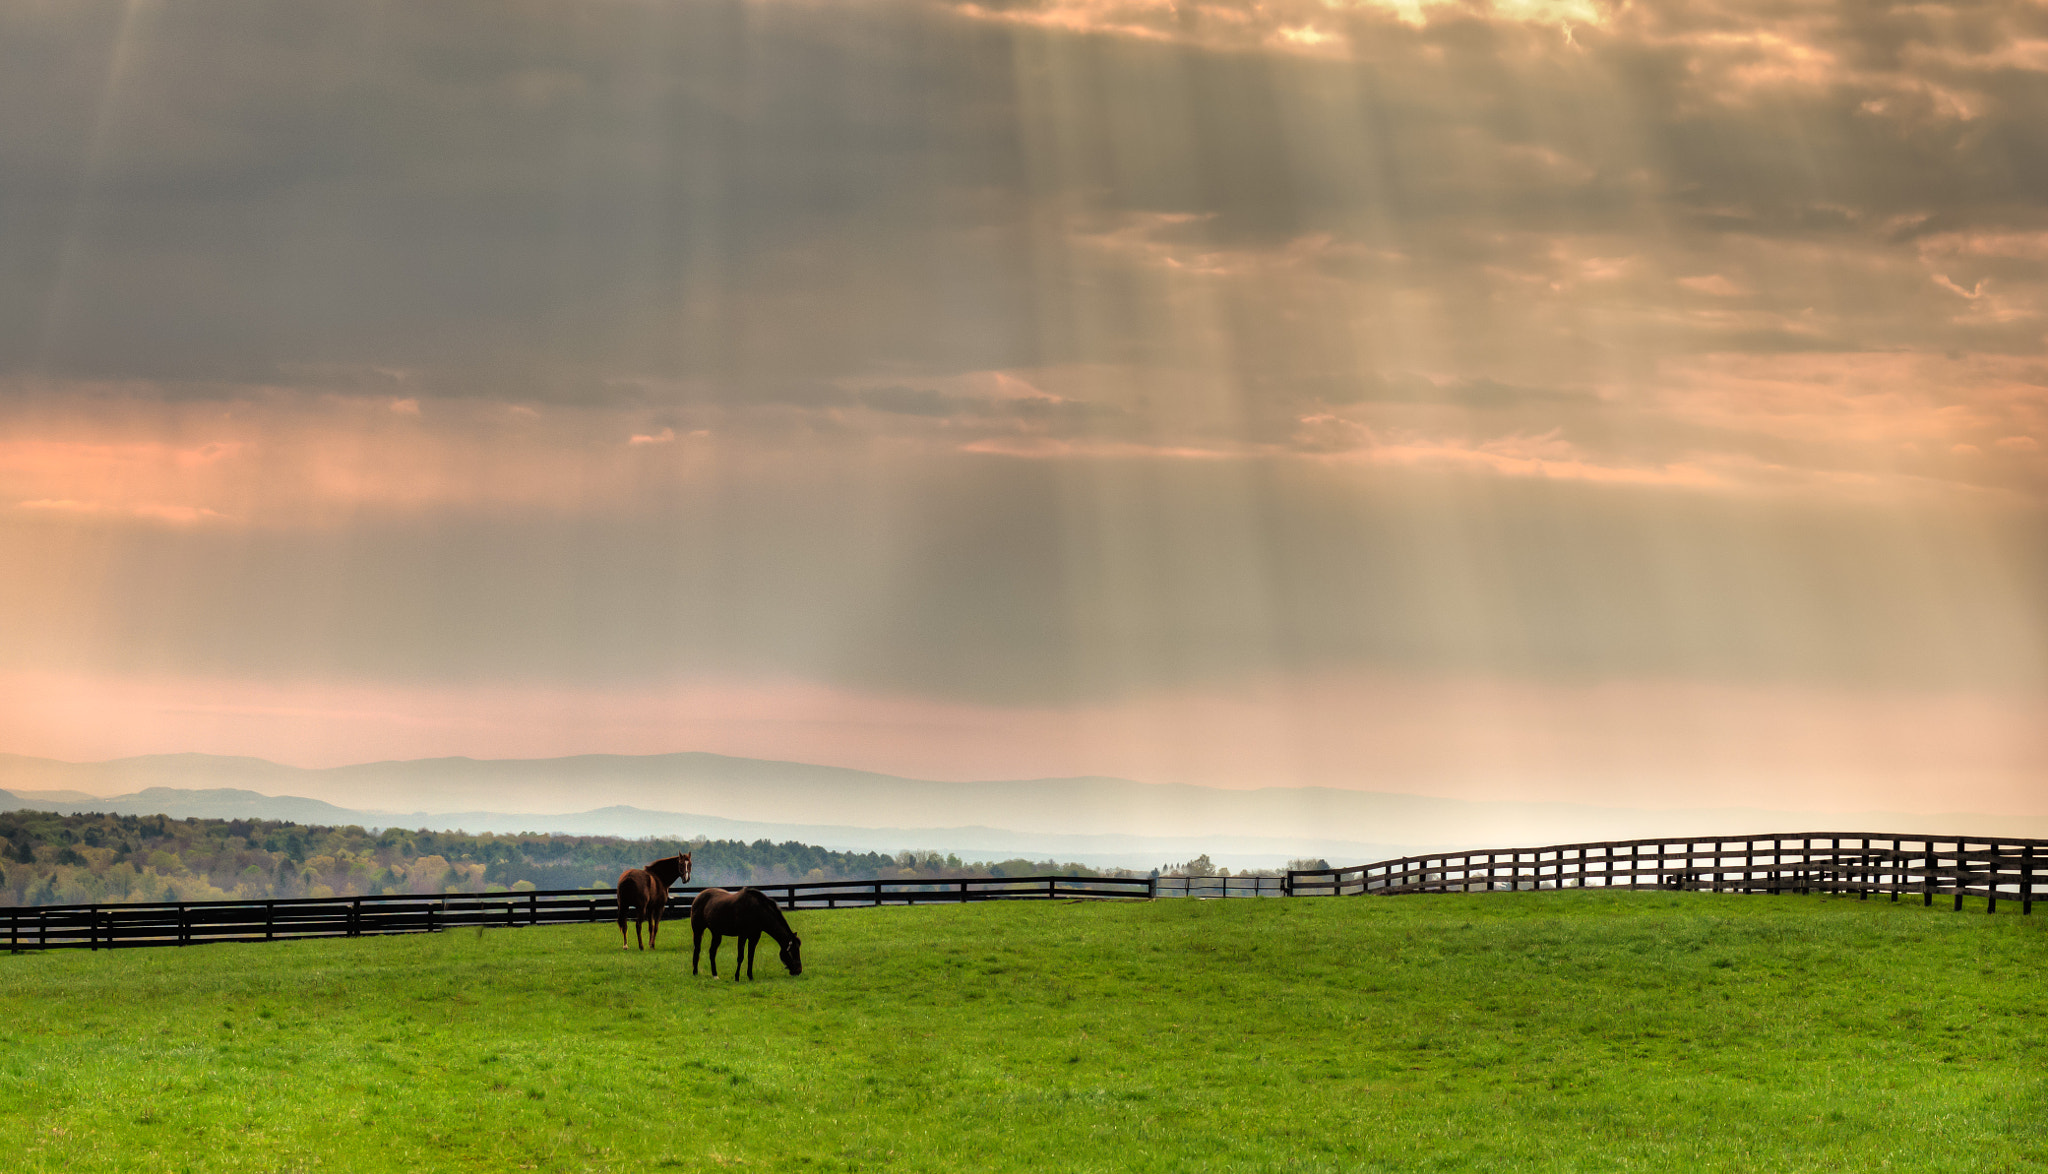 Photograph Sunlit Horses on Derby Day  by Stephen Puliafico on 500px